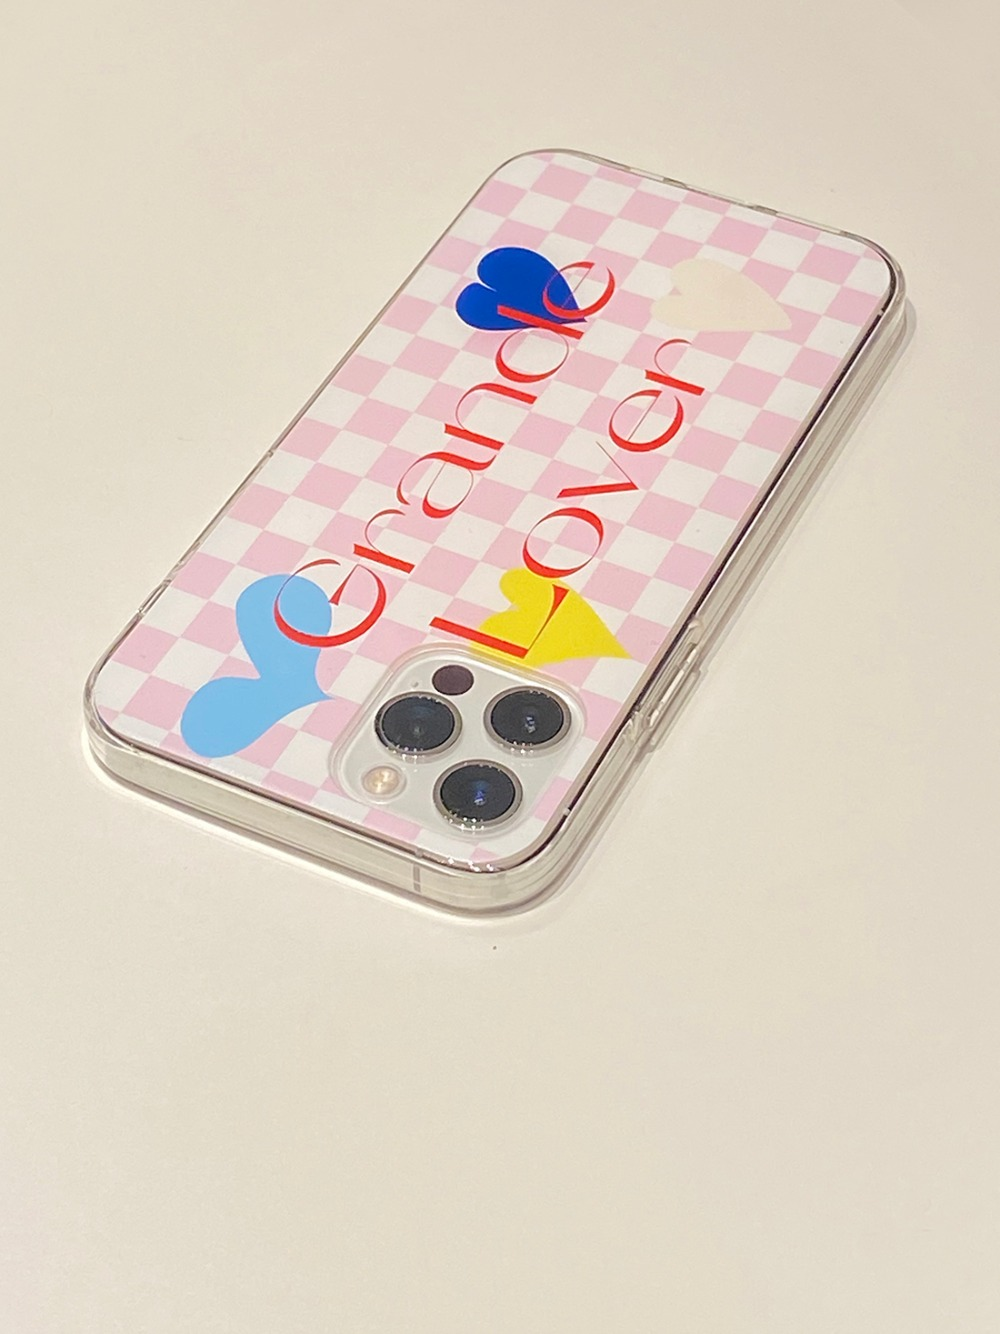 Grande Lover Phone Case (Jelly Type)